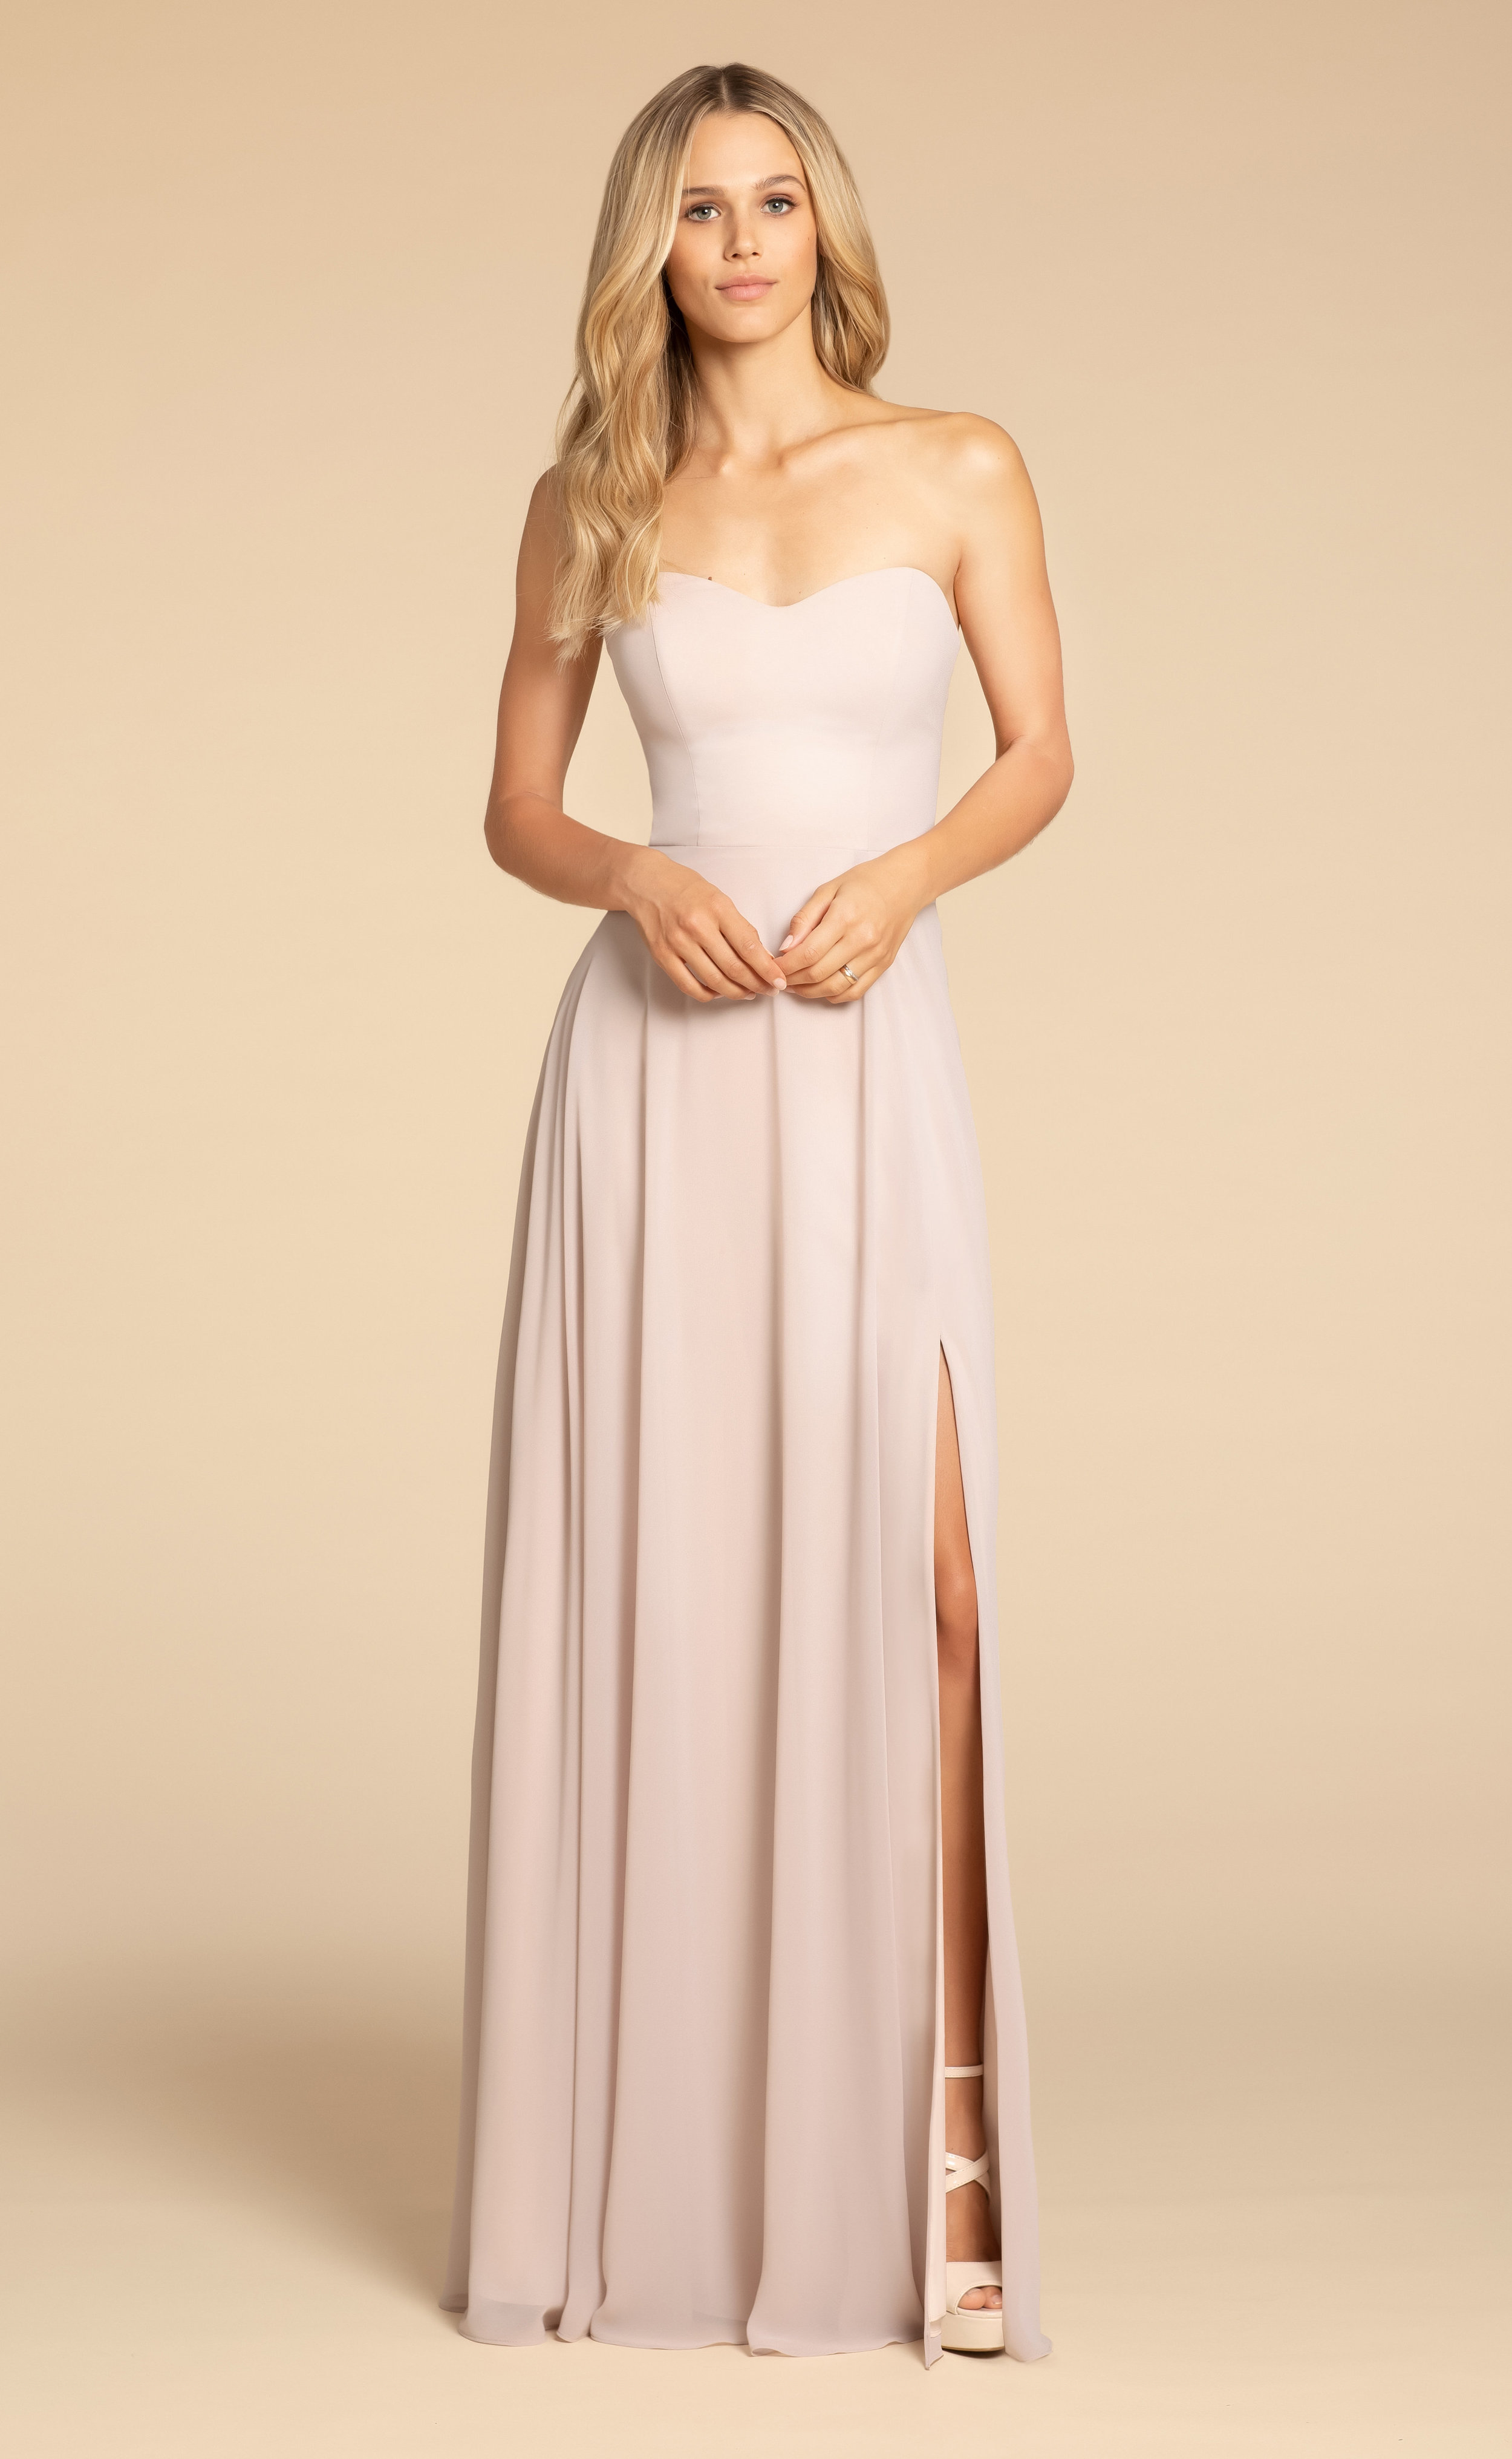 5902 -  Hayley Paige Occasions bridesmaids gown - Candlelight chiffon A-line gown, sweetheart strapless neckline, keyhole back detail, natural waist, slit at front.    Available in 22 colors